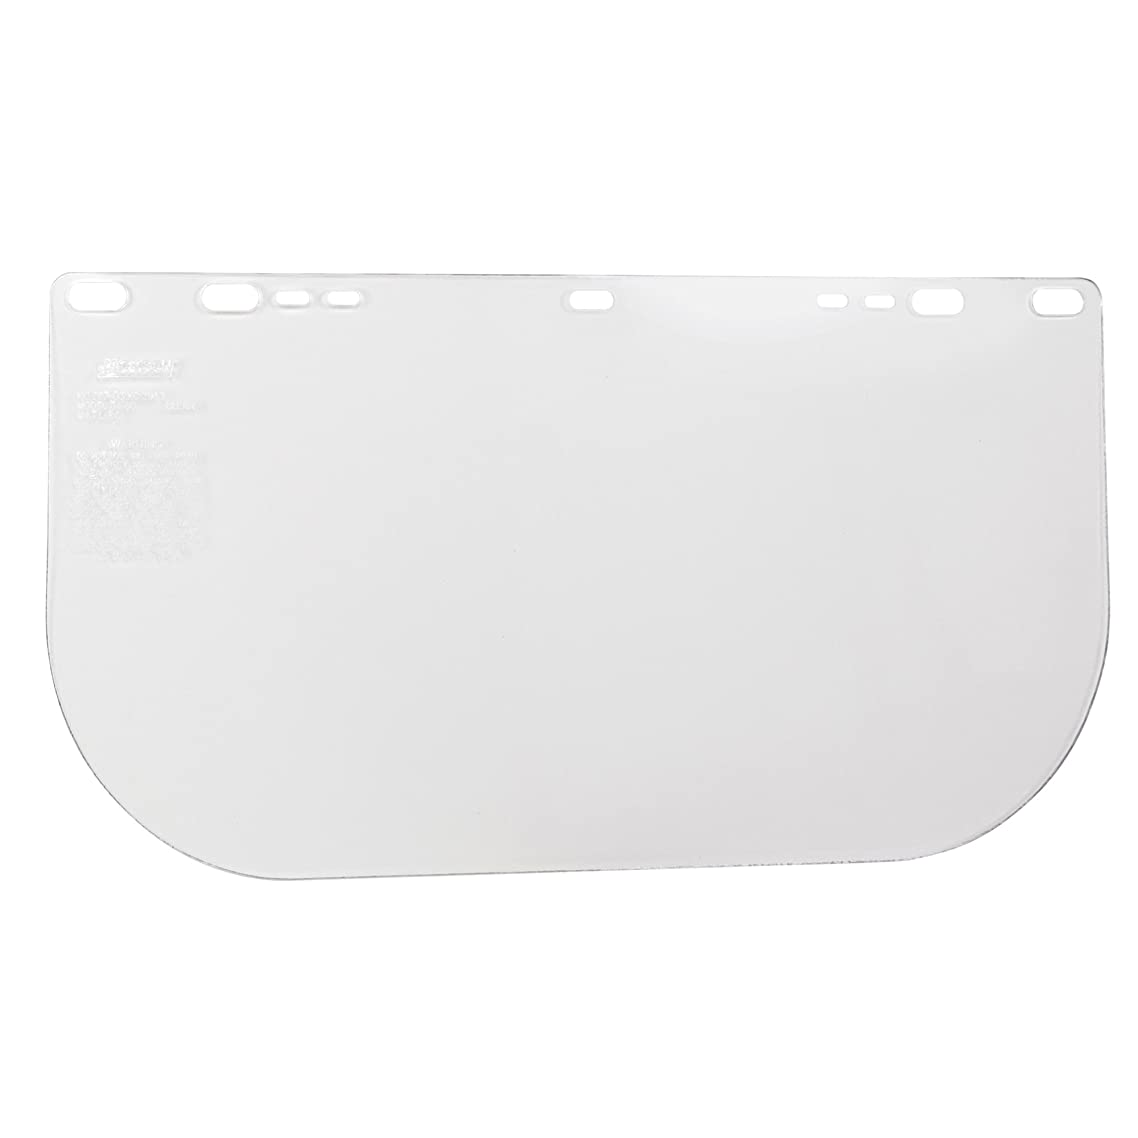 "Jackson Safety F20 High Impact Face Shield (29109), Polycarbonate, 8"" x 15.5"" x 0.06"", Clear, Face Protection, Unbound, 12 Shields / Case pifdxjvy61200067"